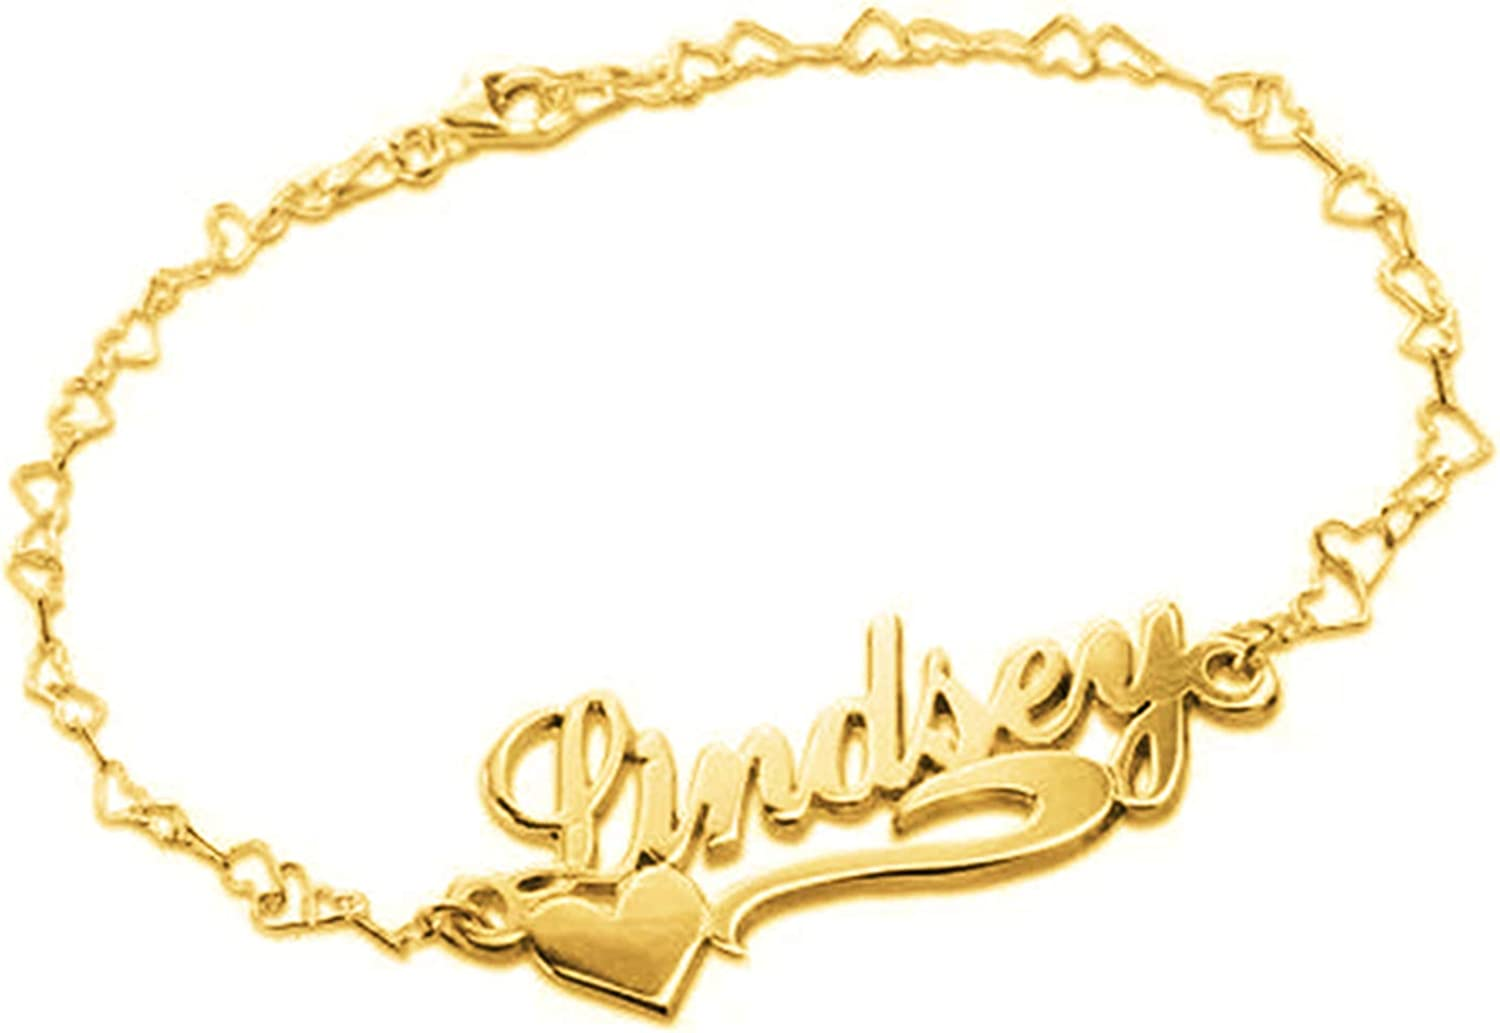 Heart Cheap Shaped Bracelet Personalized B Selling and selling Name Engraved Text